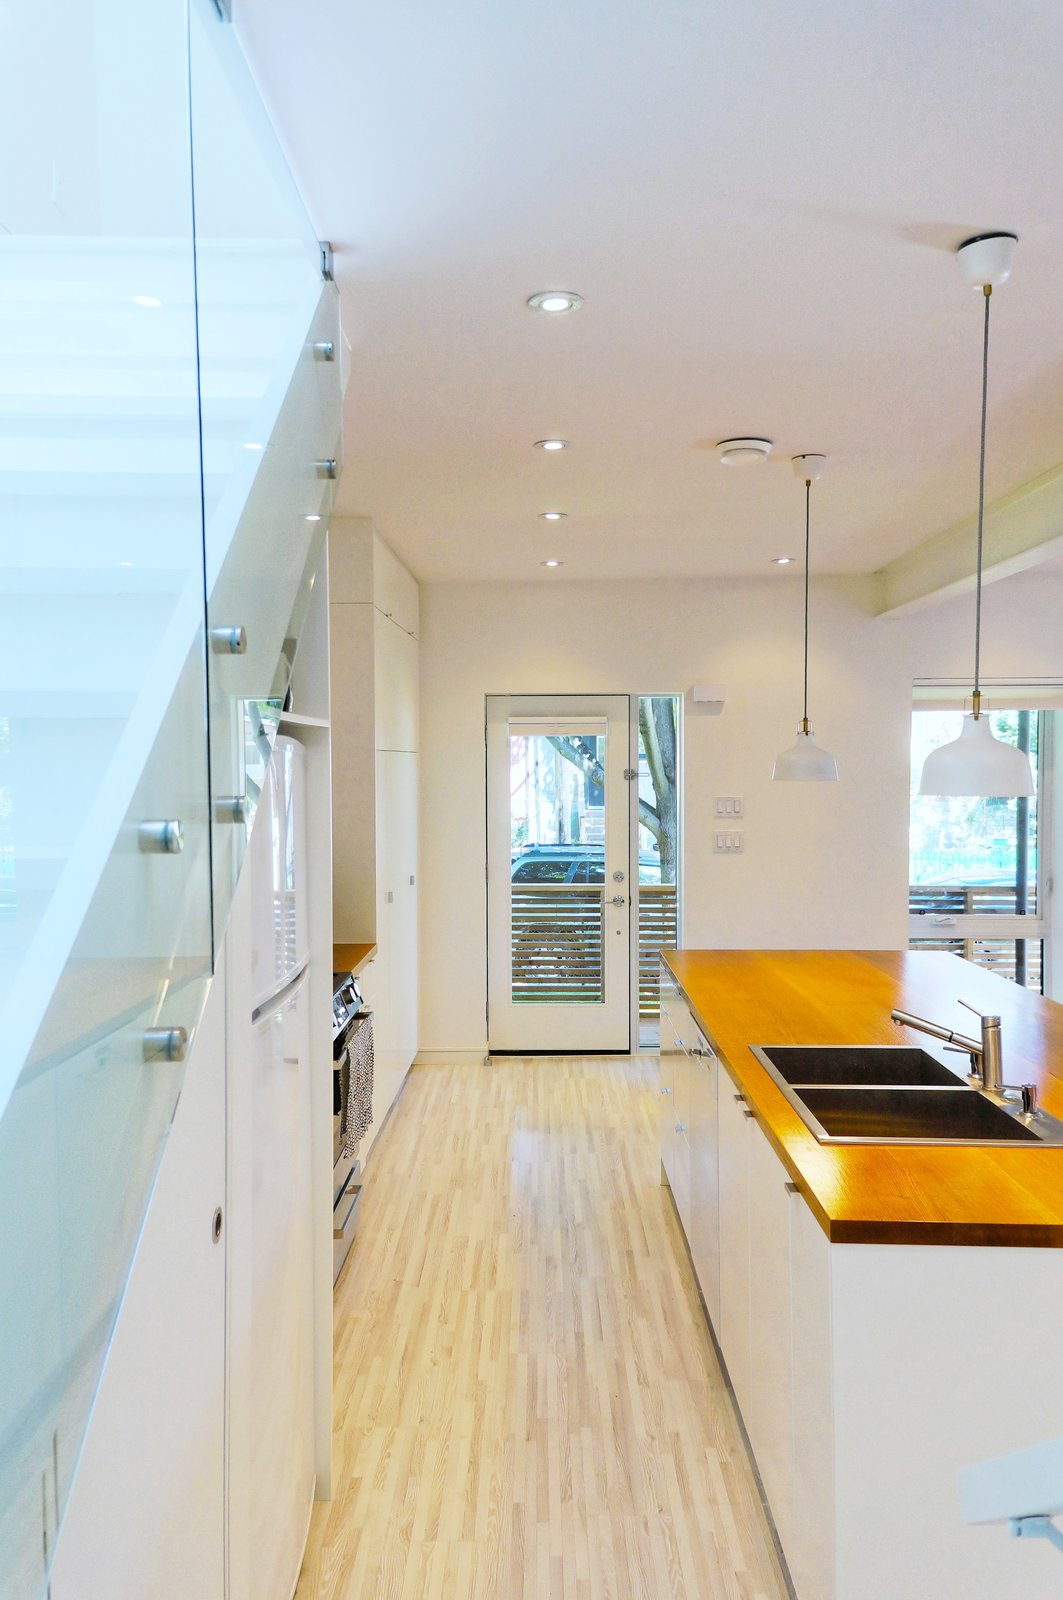 Our House - Kitchen Tagged: Wood Counter, Drop In Sink, White Cabinet, Light Hardwood Floor, Ceiling Lighting, Pendant Lighting, Staircase, and Glass Railing.  Our House by Solares Architecture